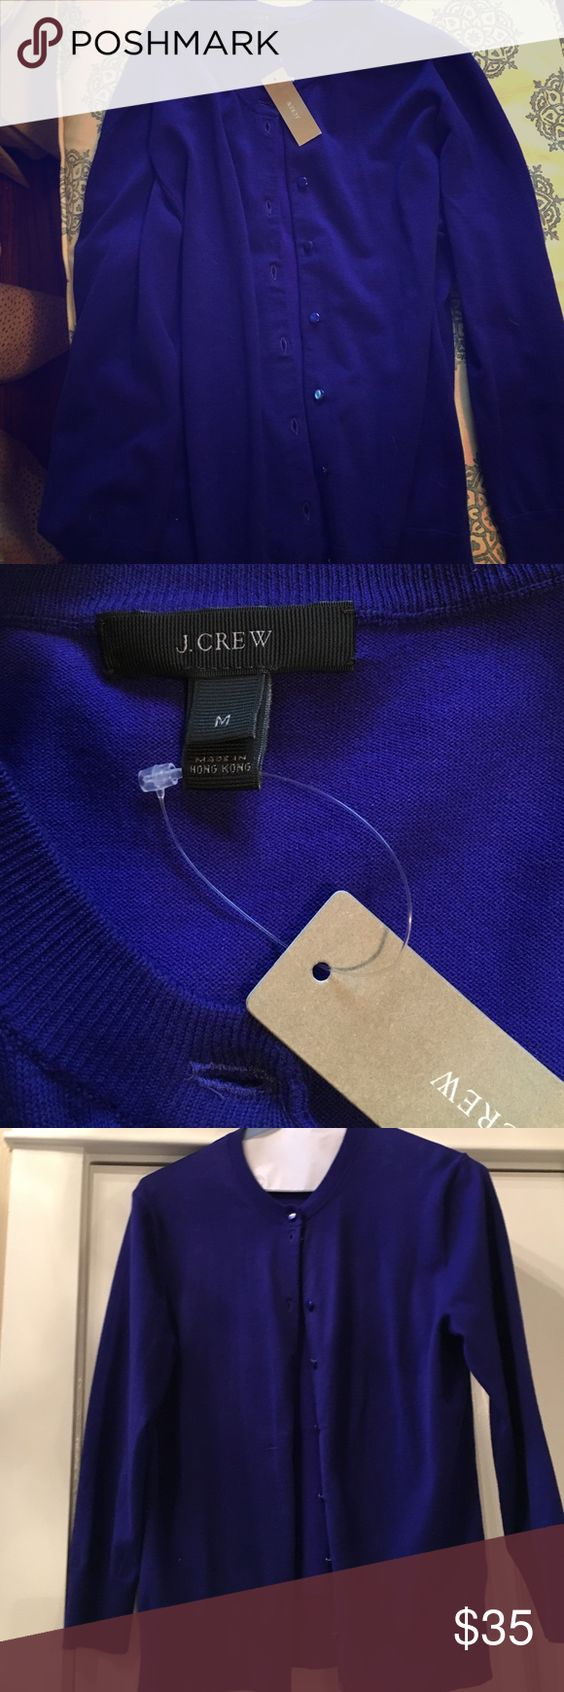 Cardigan from J Crew, NWT💜 Tippi cardigan in deep purple from J Crew . NWT J. Crew Sweaters Cardigans